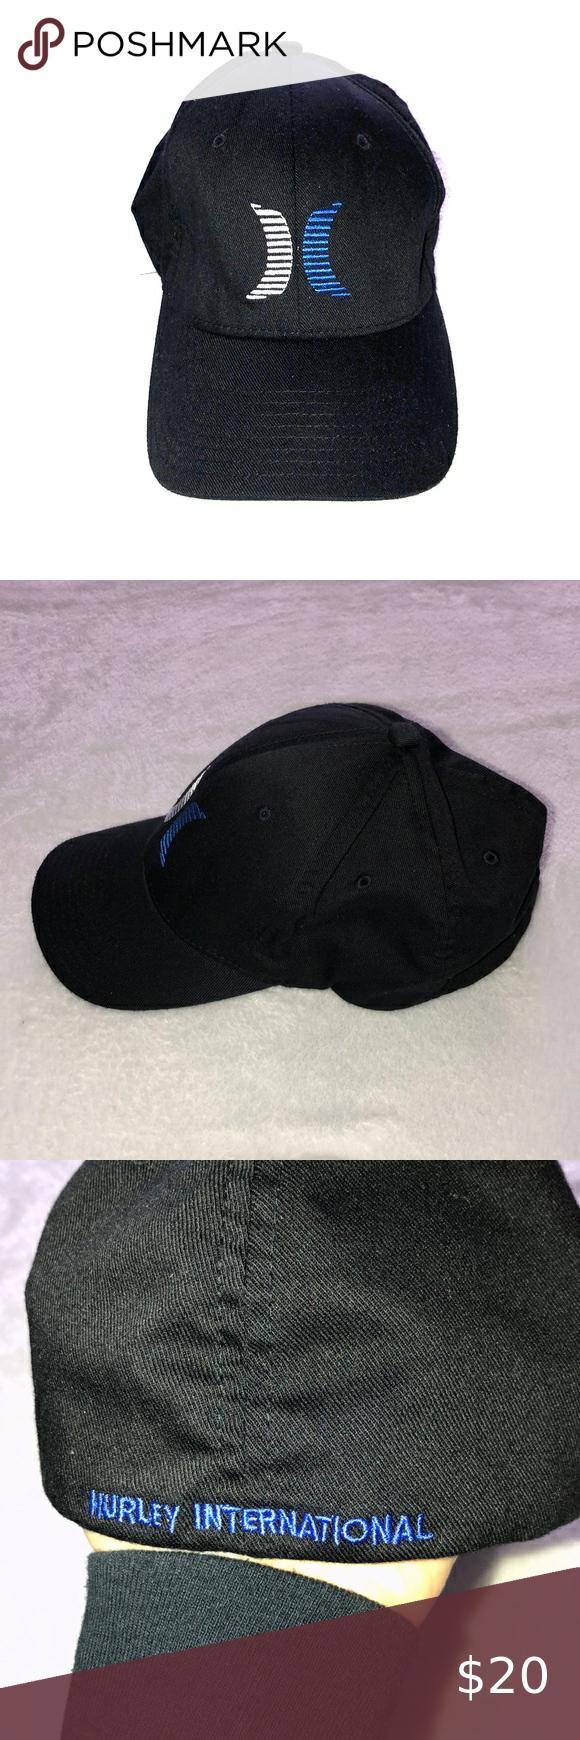 Hurley Hat In 2020 Hurley Hats Fashion Trends Clothes Design